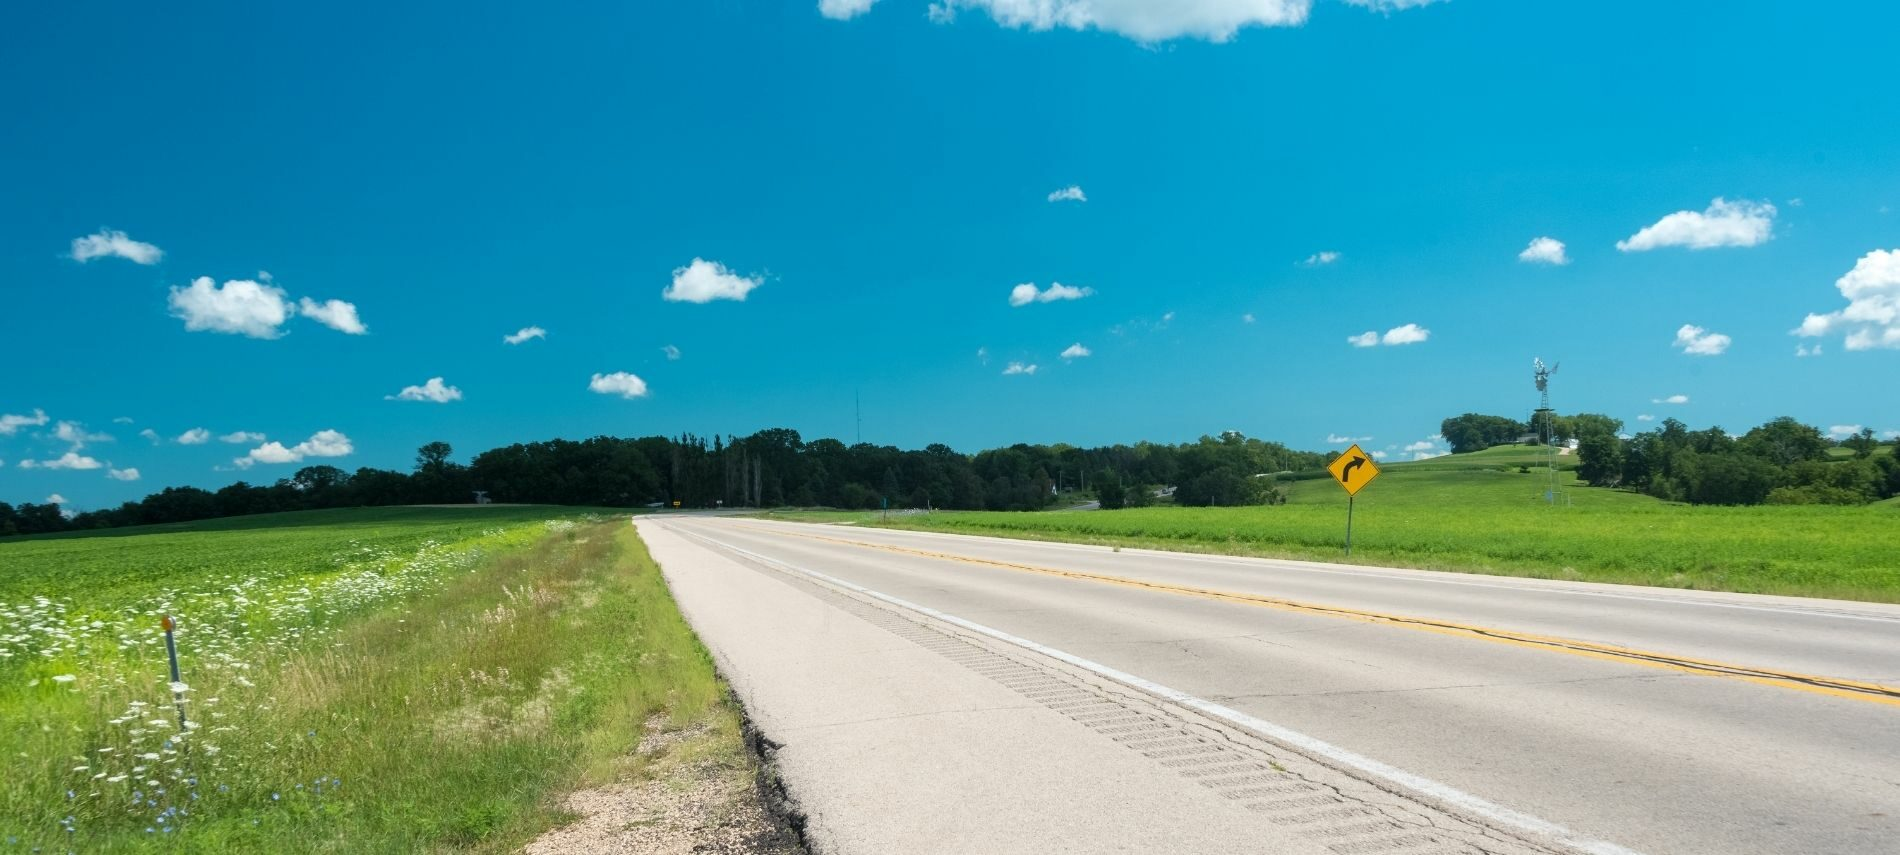 Country road in Clinton County surrounded by blue skies and country views.